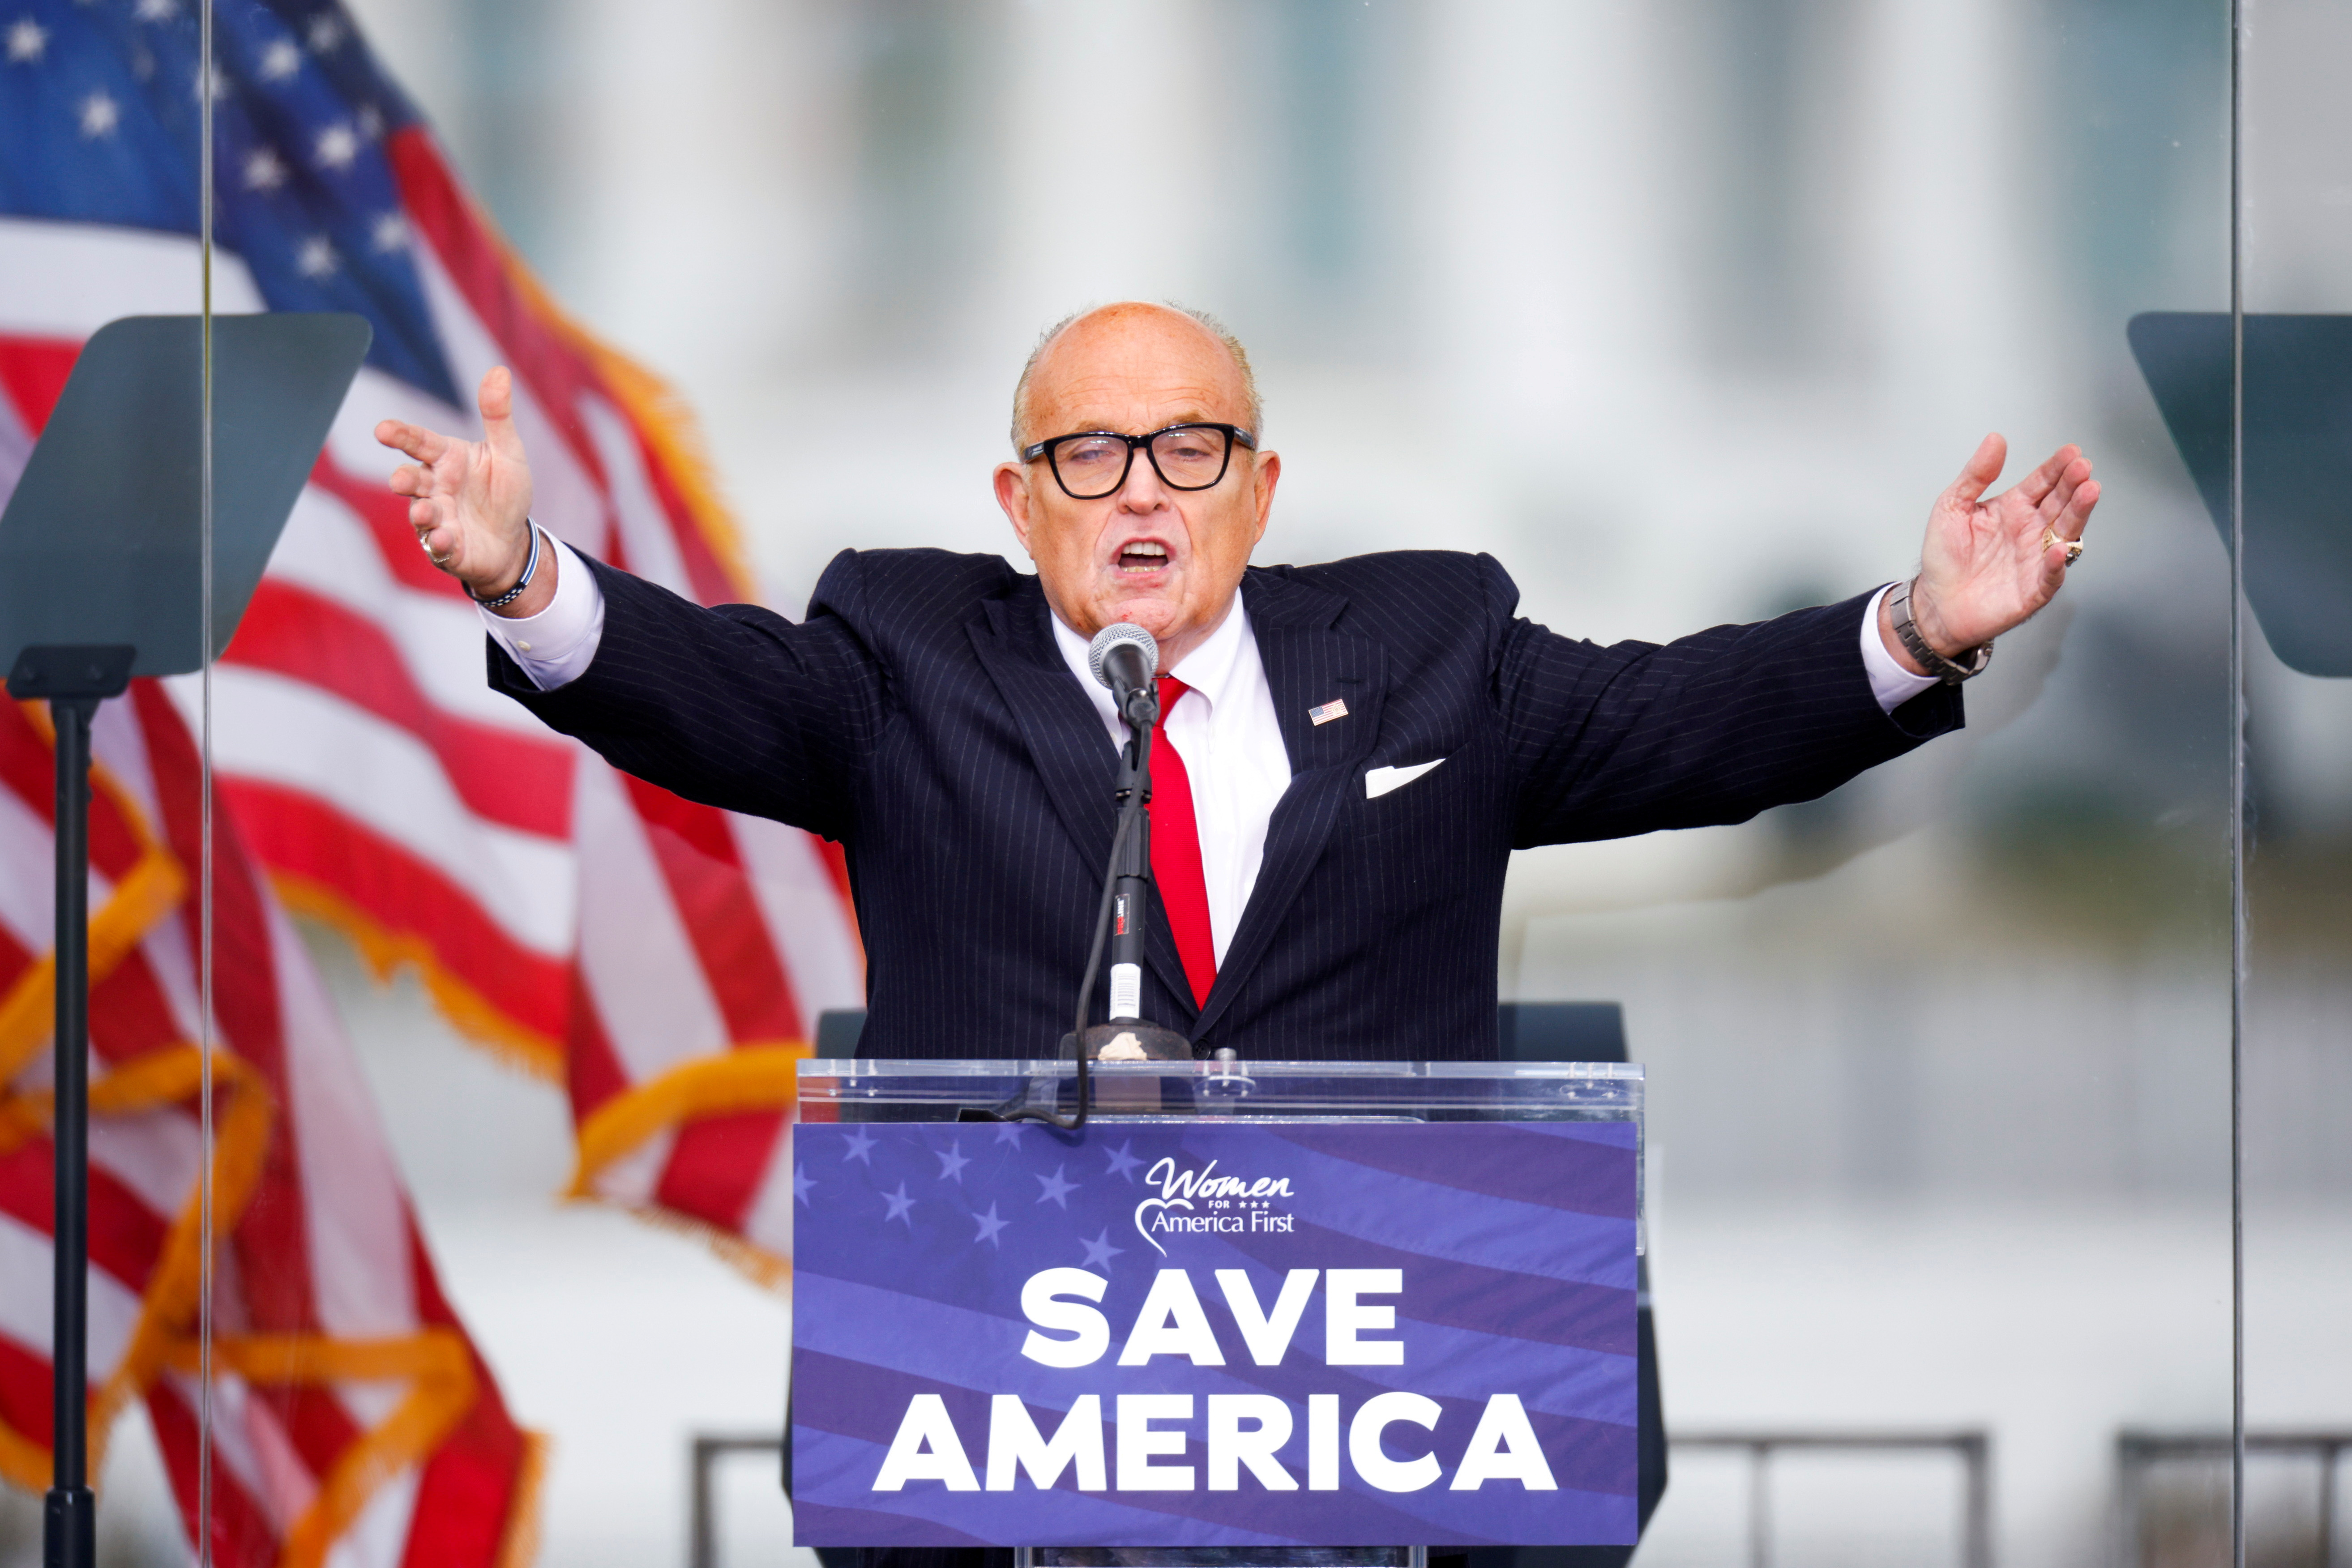 U.S. President Donald Trump's personal lawyer Rudy Giuliani gestures as he speaks as Trump supporters gather by the White House ahead of his speech to contest the certification by the U.S. Congress of the results of the 2020 U.S. presidential election in Washington, U.S, January 6, 2021. REUTERS/Jim Bourg